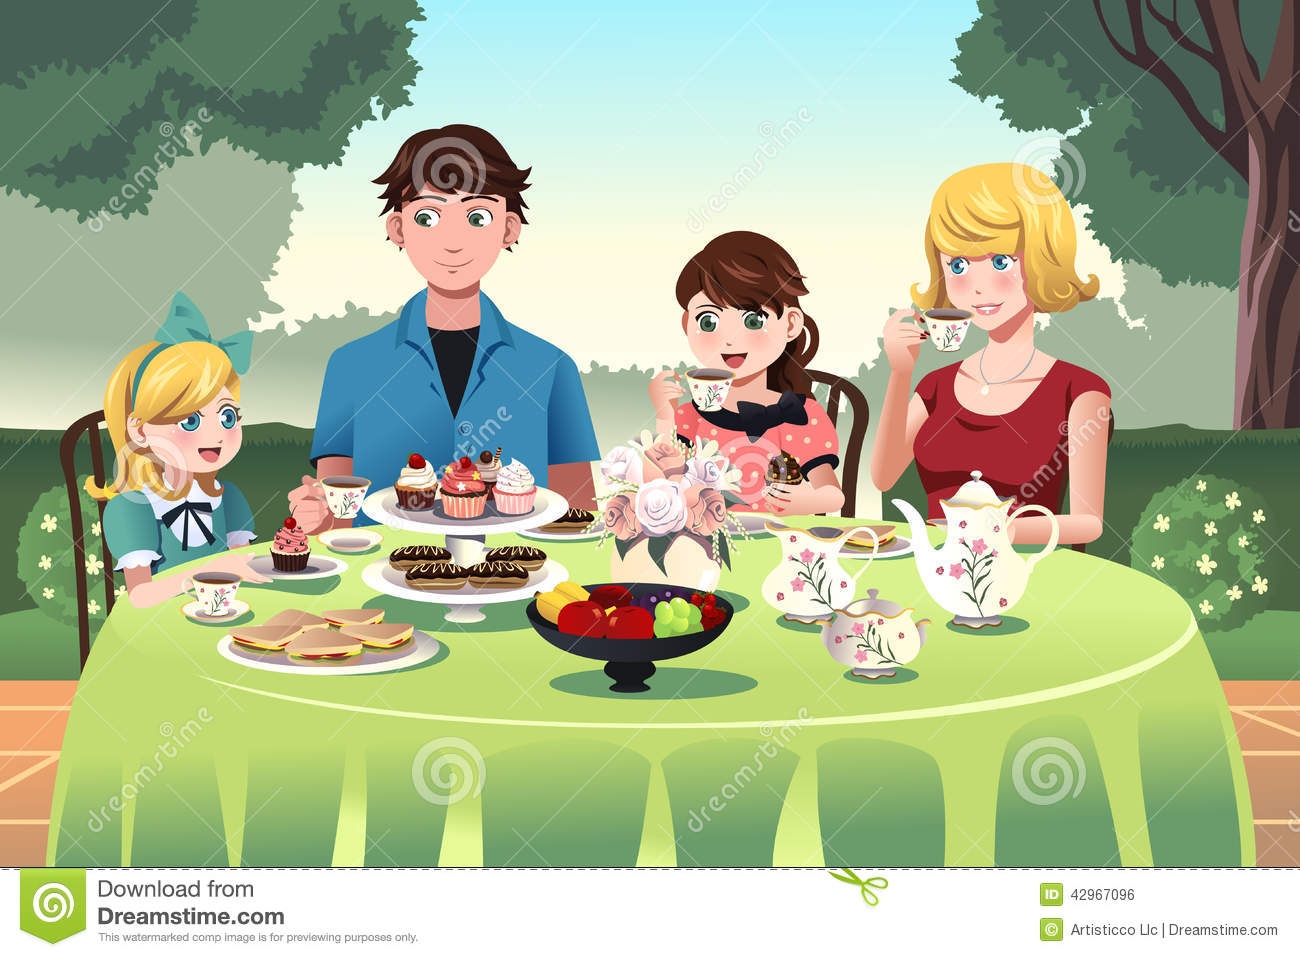 Showing Post Media For Cartoons Eating Together Family Eat Clipart